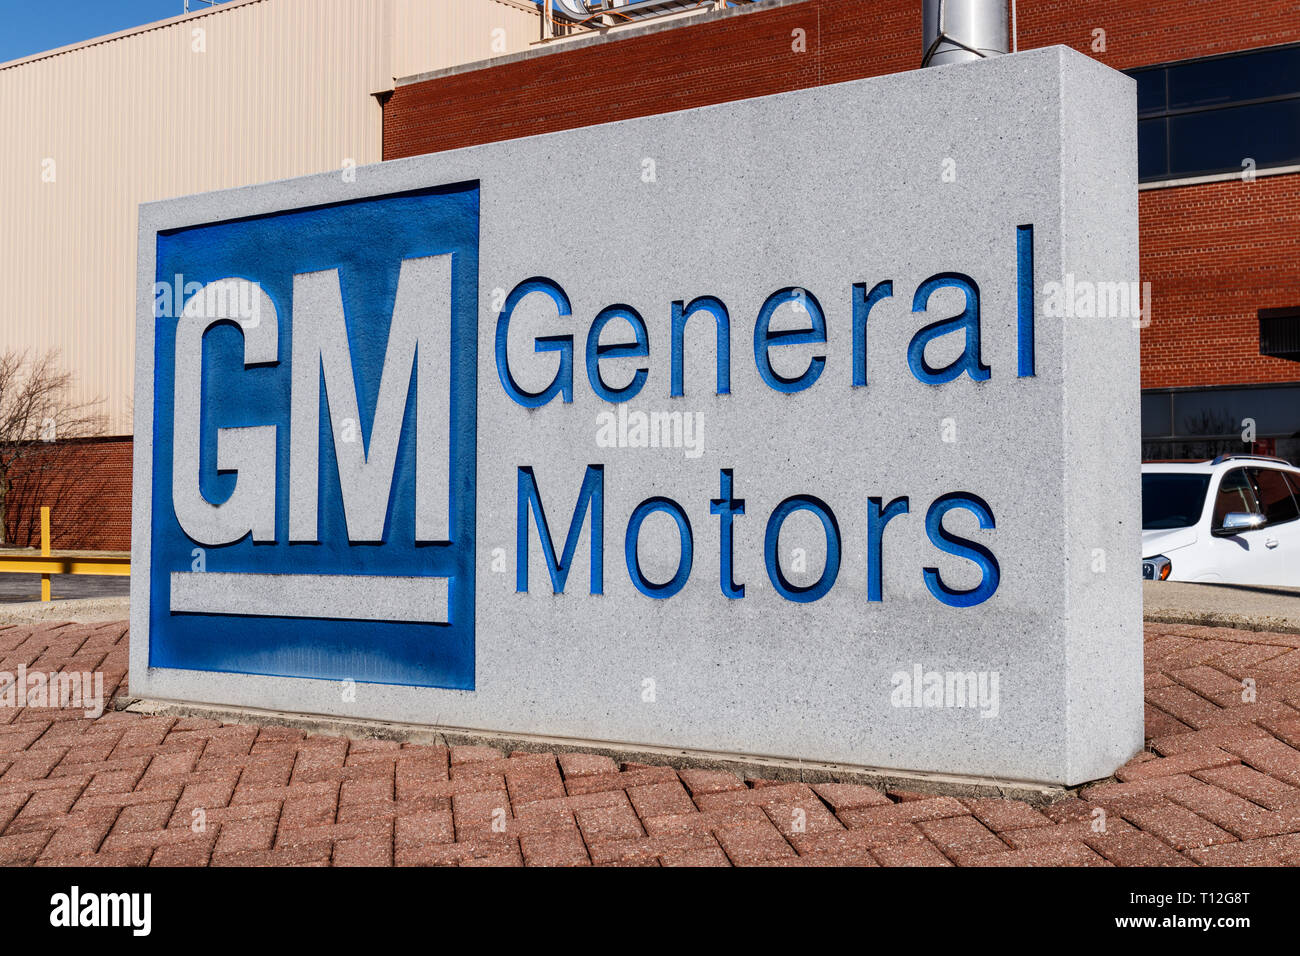 Marion - Circa March 2019: General Motors Logo and Signage at the Metal Fabricating Division. GM opened this plant in 1956 III - Stock Image